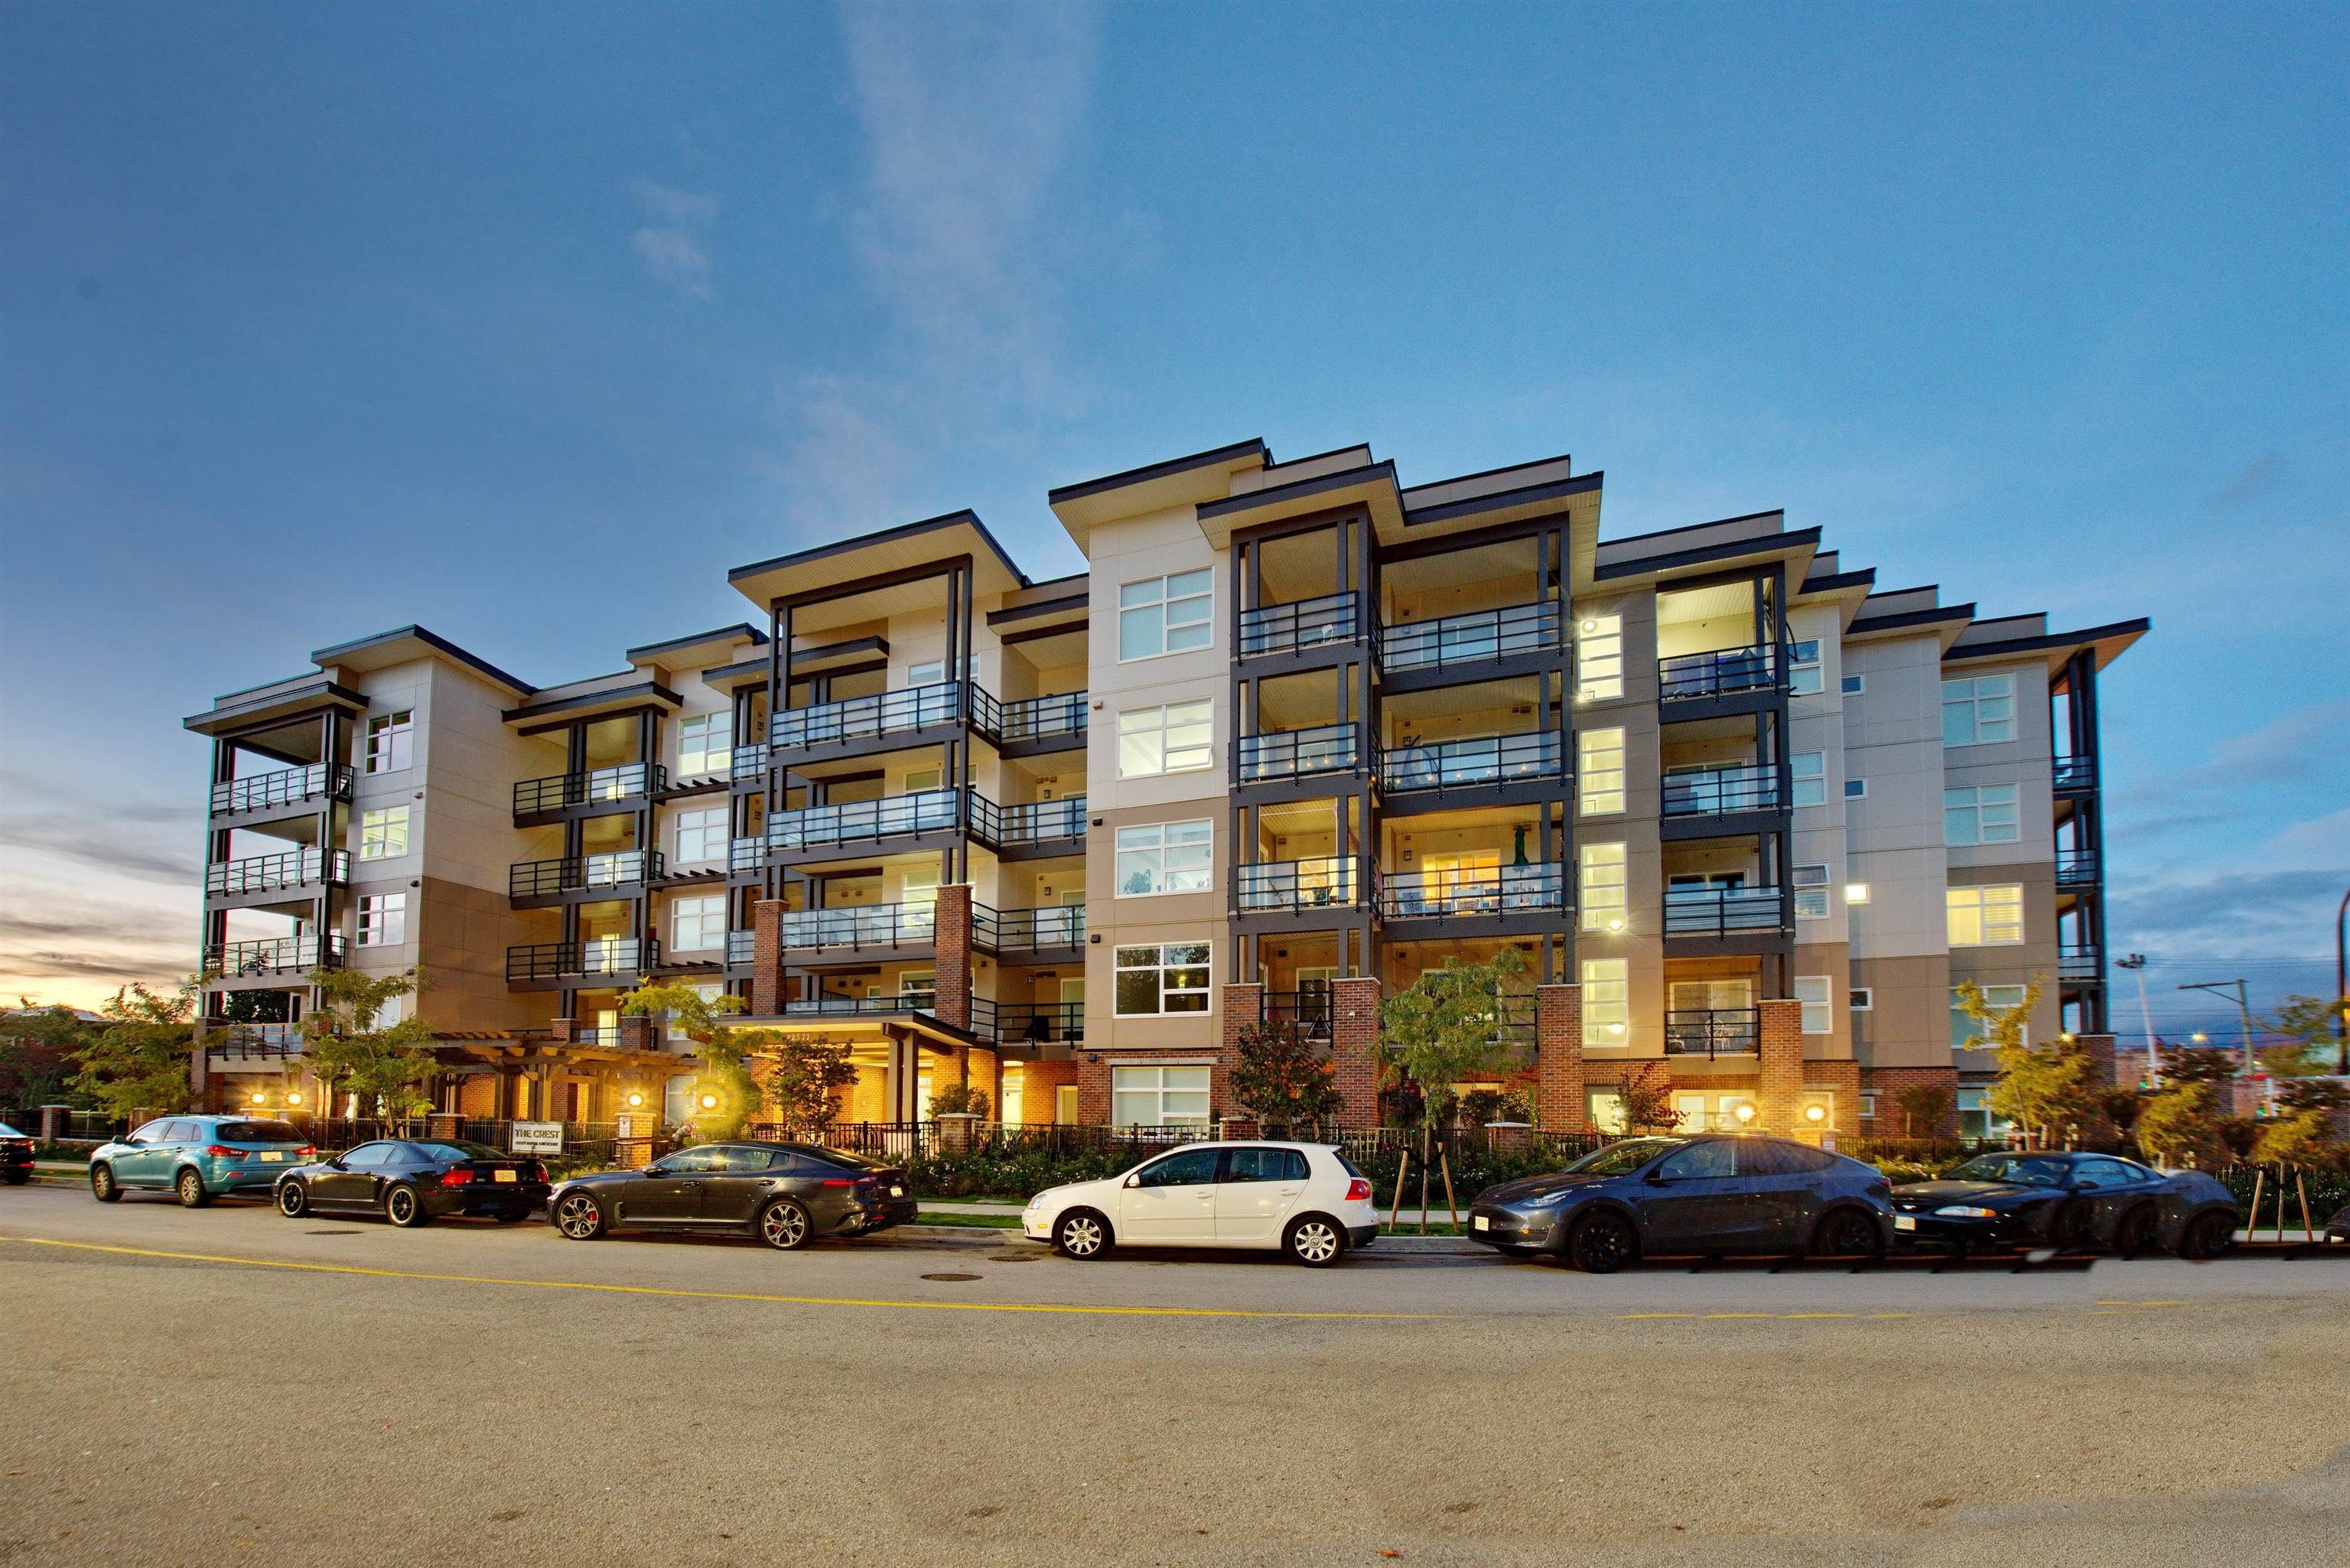 """Main Photo: 108 22577 ROYAL Crescent in Maple Ridge: East Central Condo for sale in """"THE CREST"""" : MLS®# R2625662"""